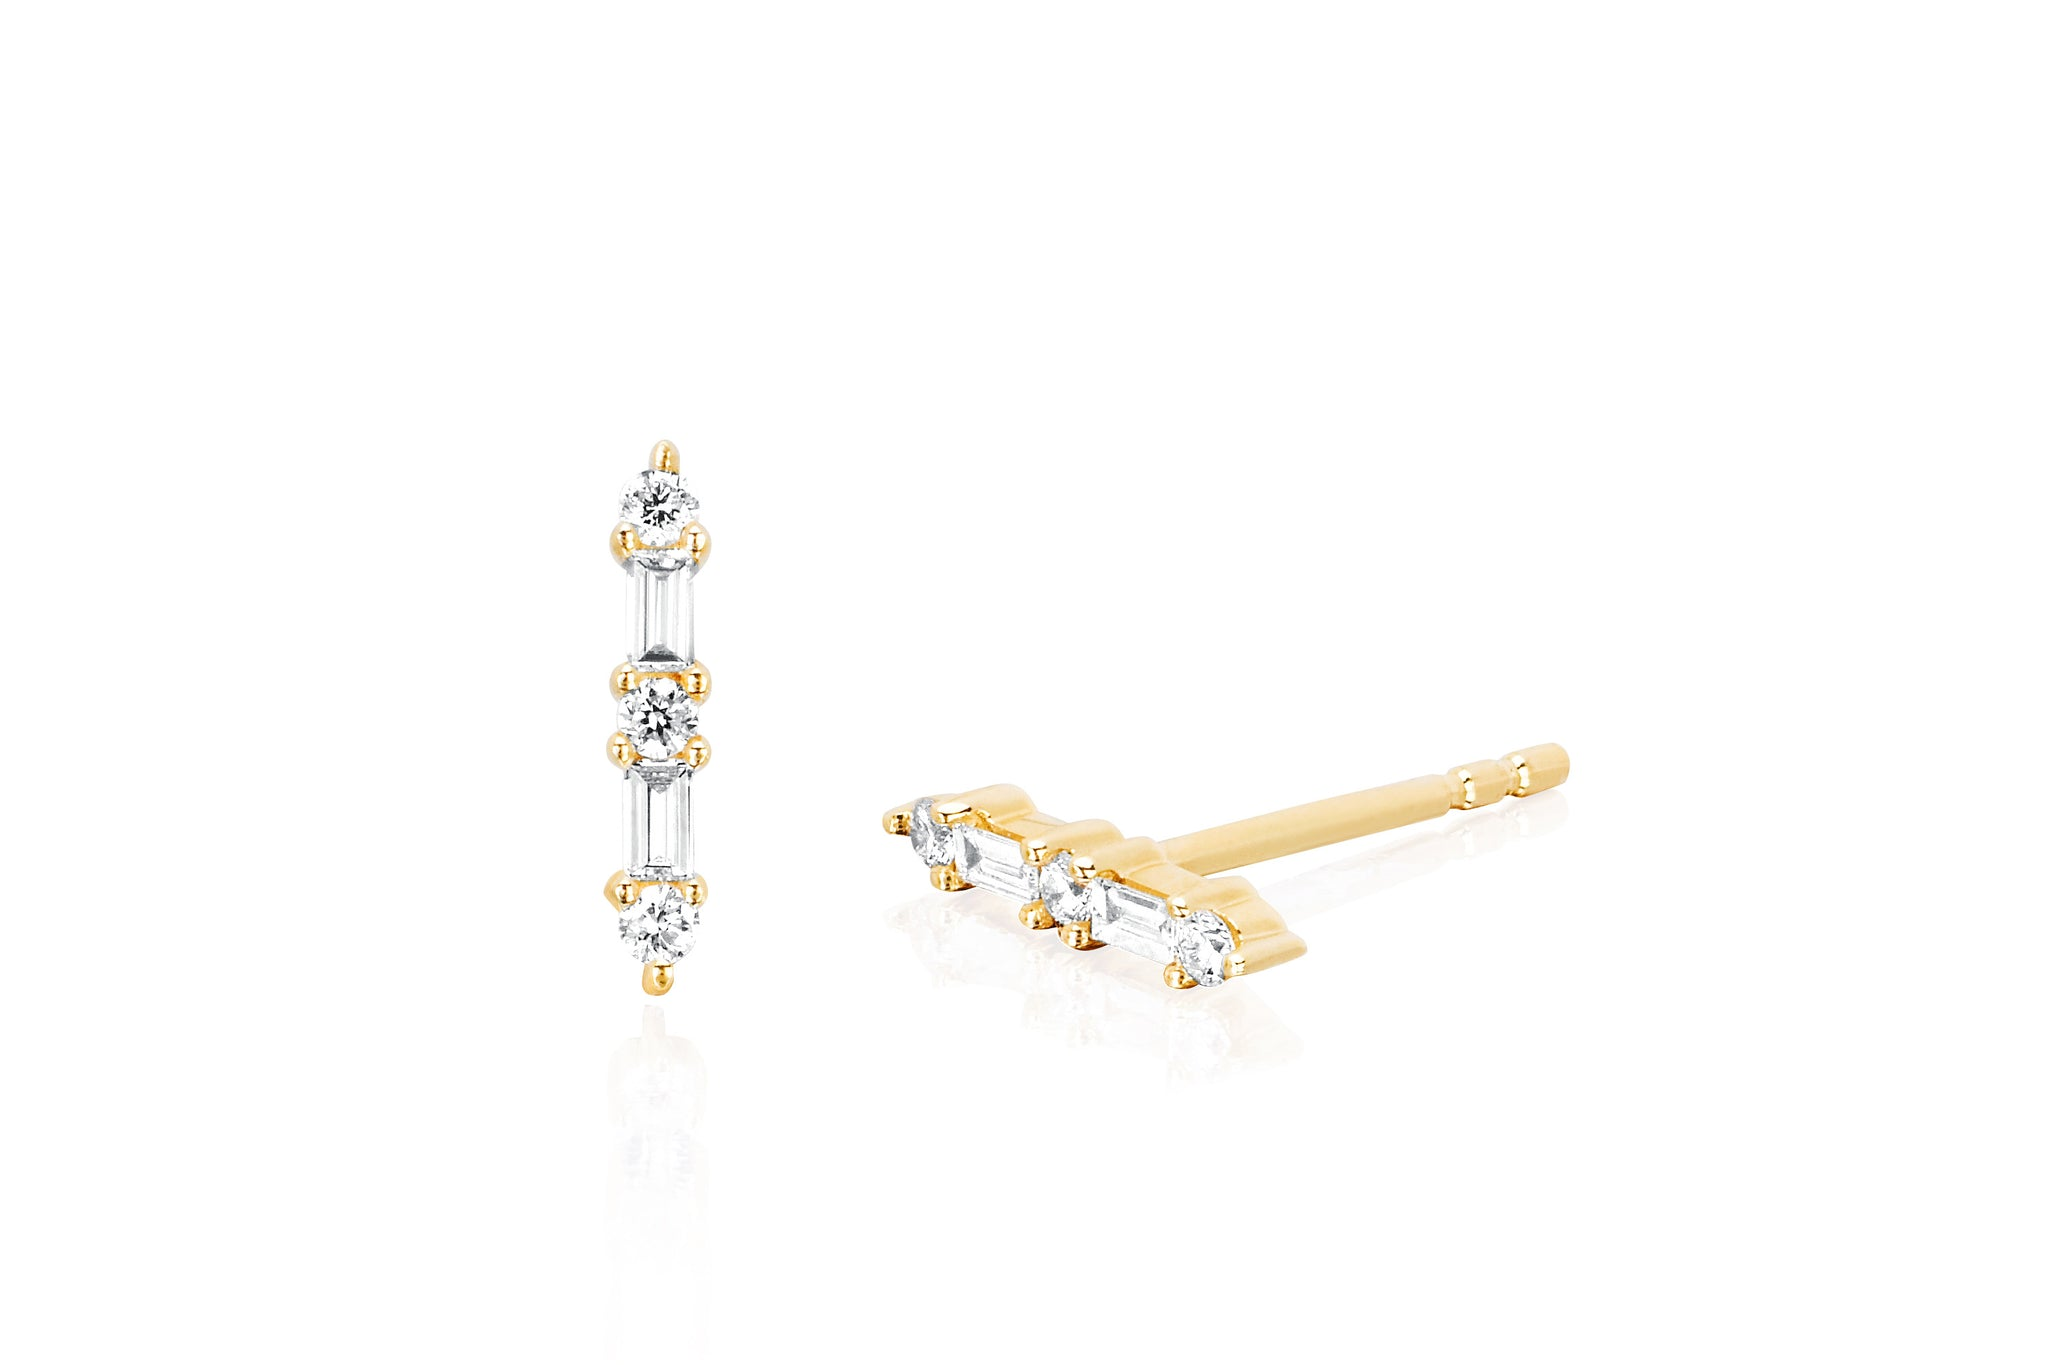 white composite gold in and stud shipping cali h i round today tdw baguette free trove product earrings carat jewelry overstock watches fashion earring diamond